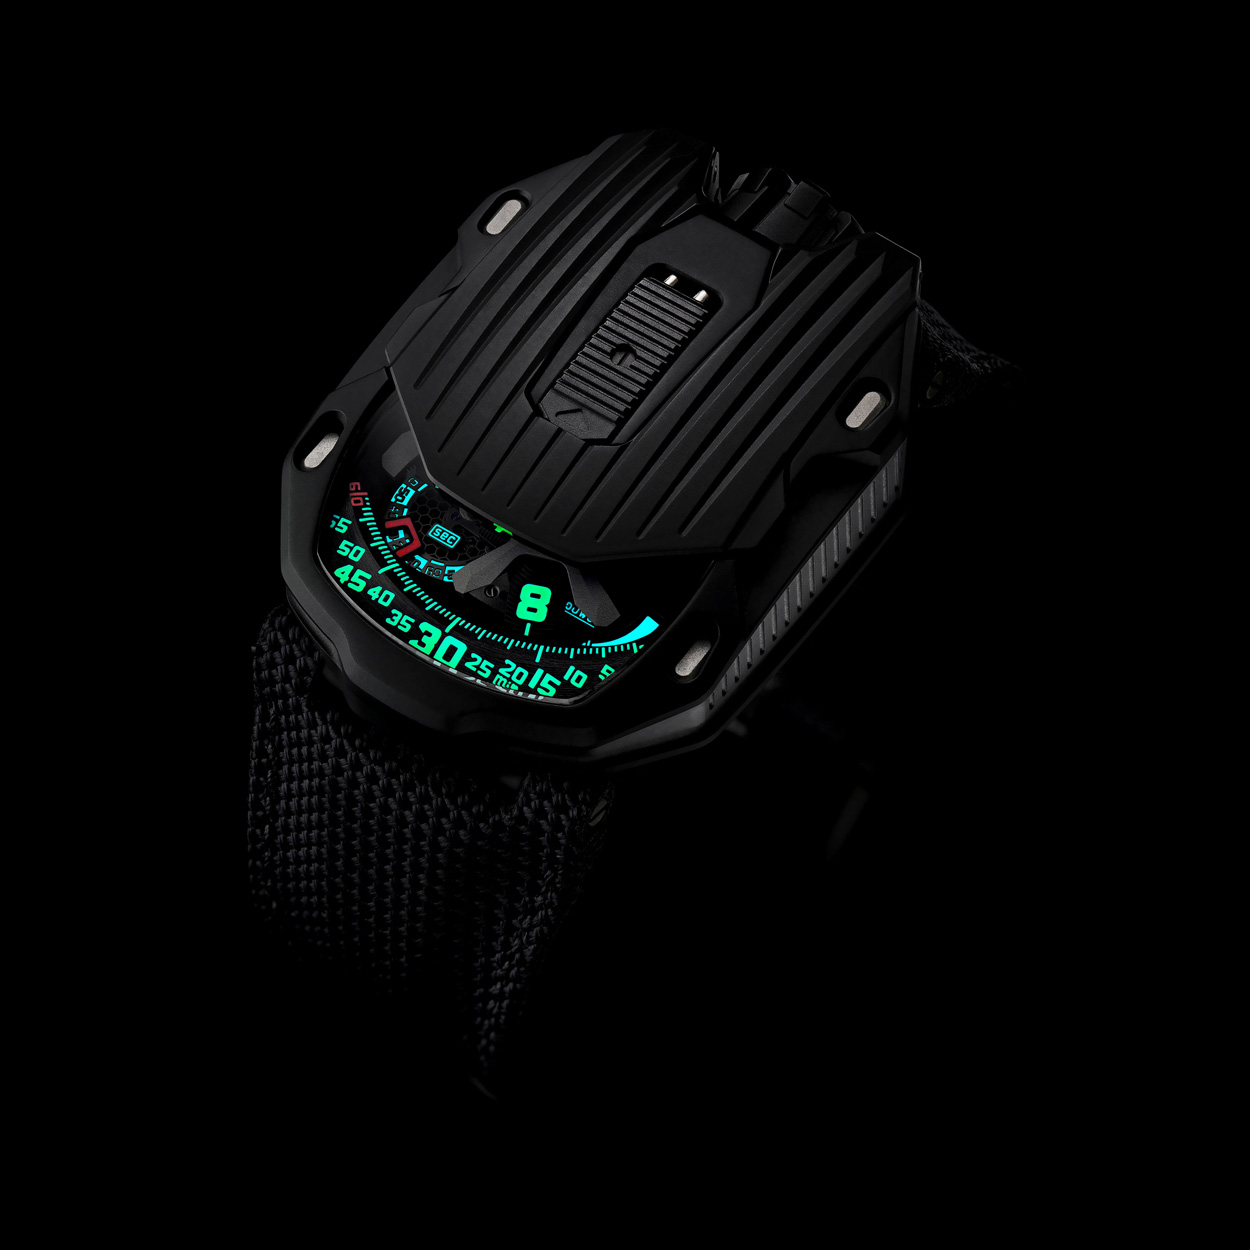 urwerk 105ct kryptonite lume superluminova